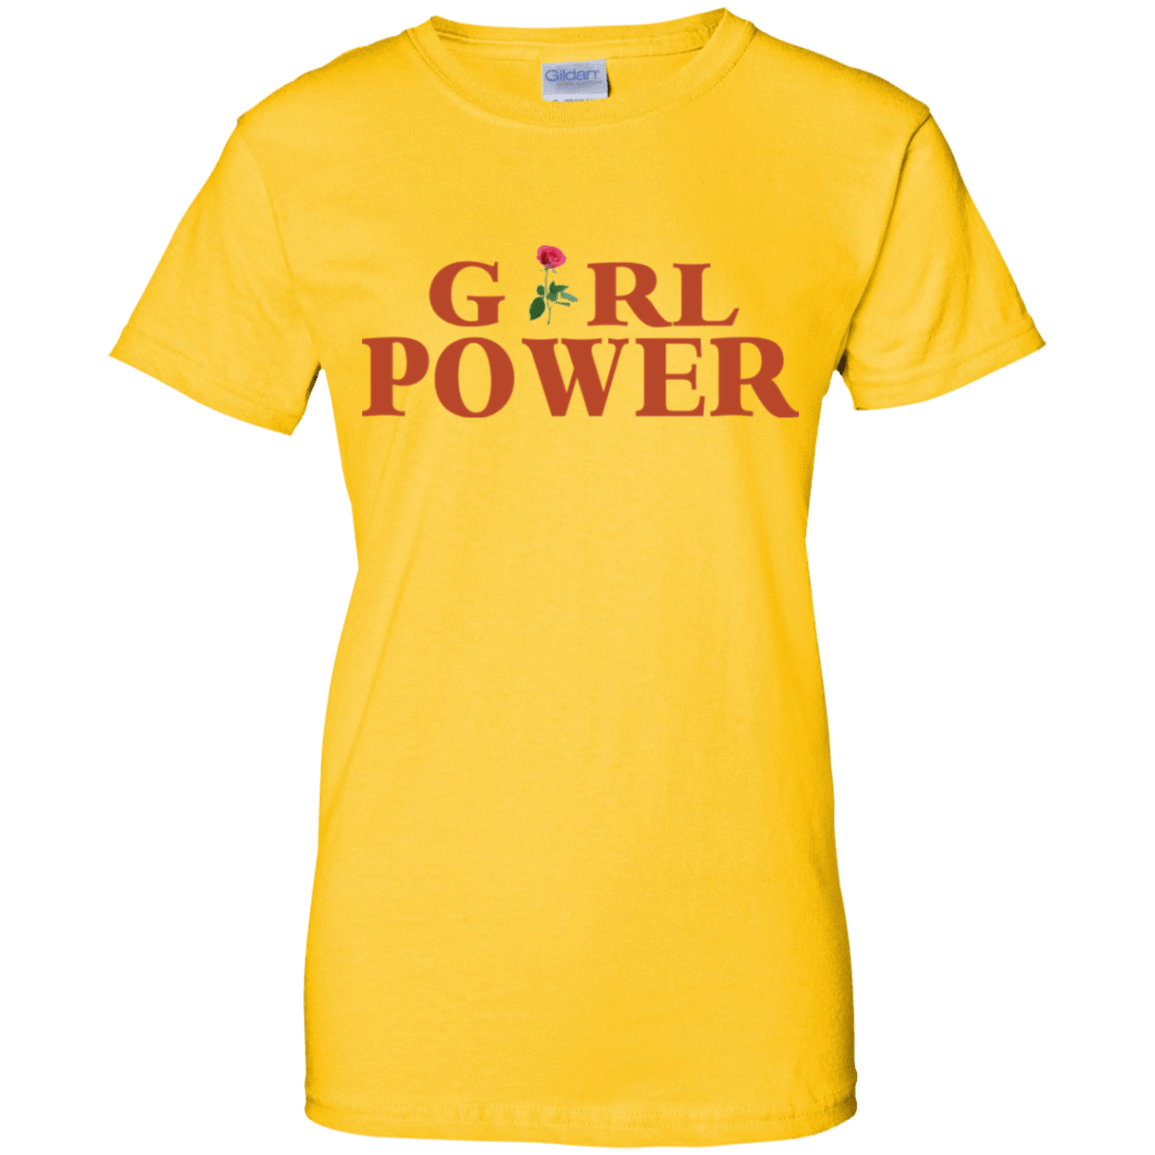 Girl Power Yellow 939-9250-73890289-44723 - Tee Ript